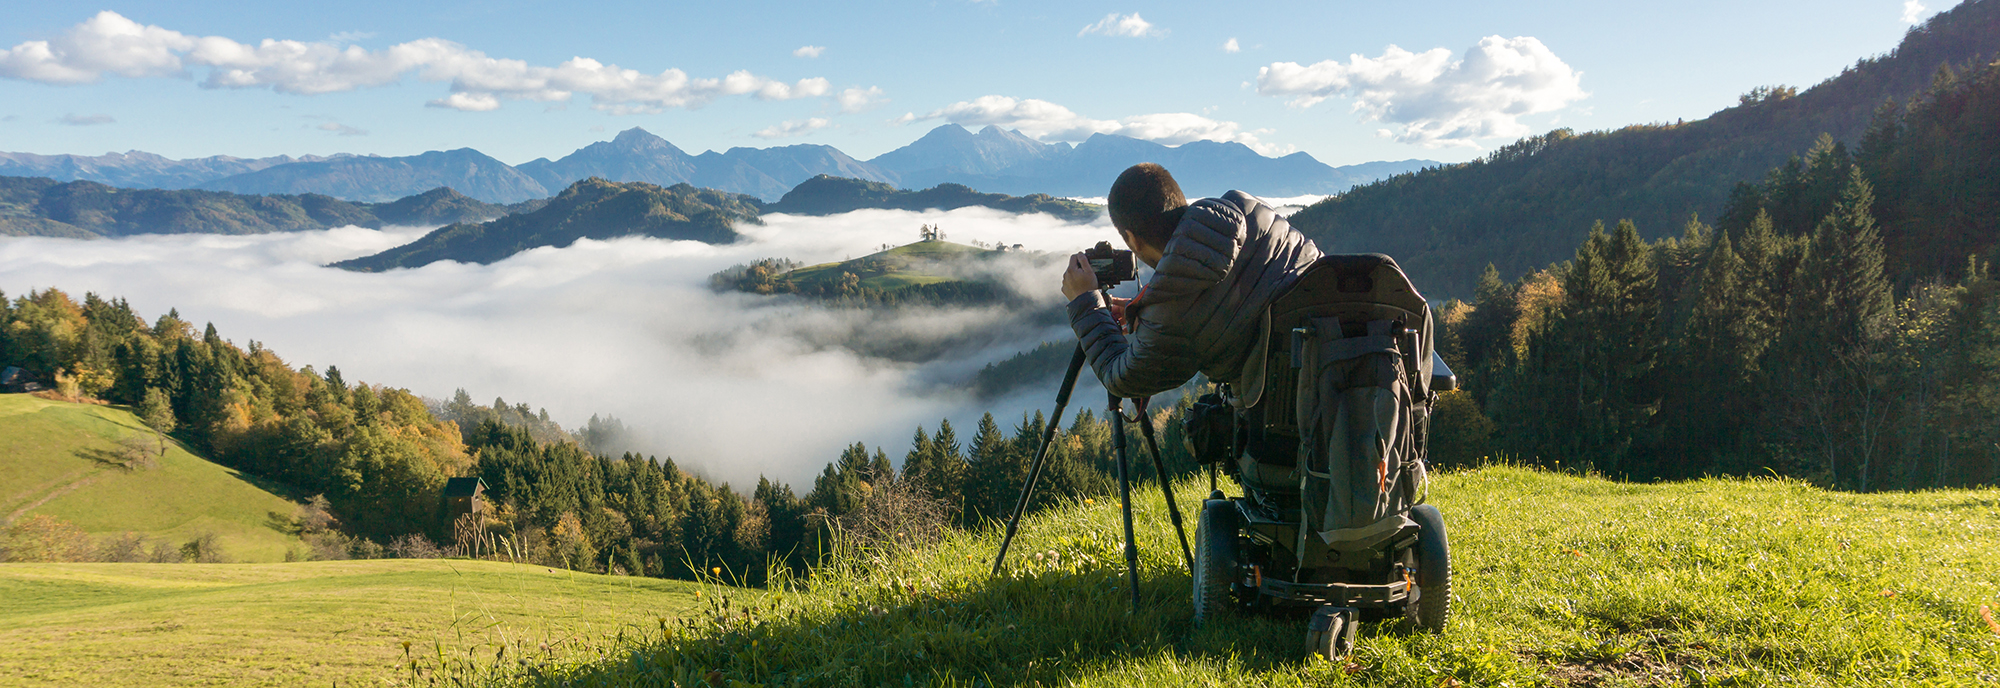 A man in a power wheelchair sits at the top of a mountain overlooking forest and other mountains covered in mist. He is using a professional camera to photograph the scene.